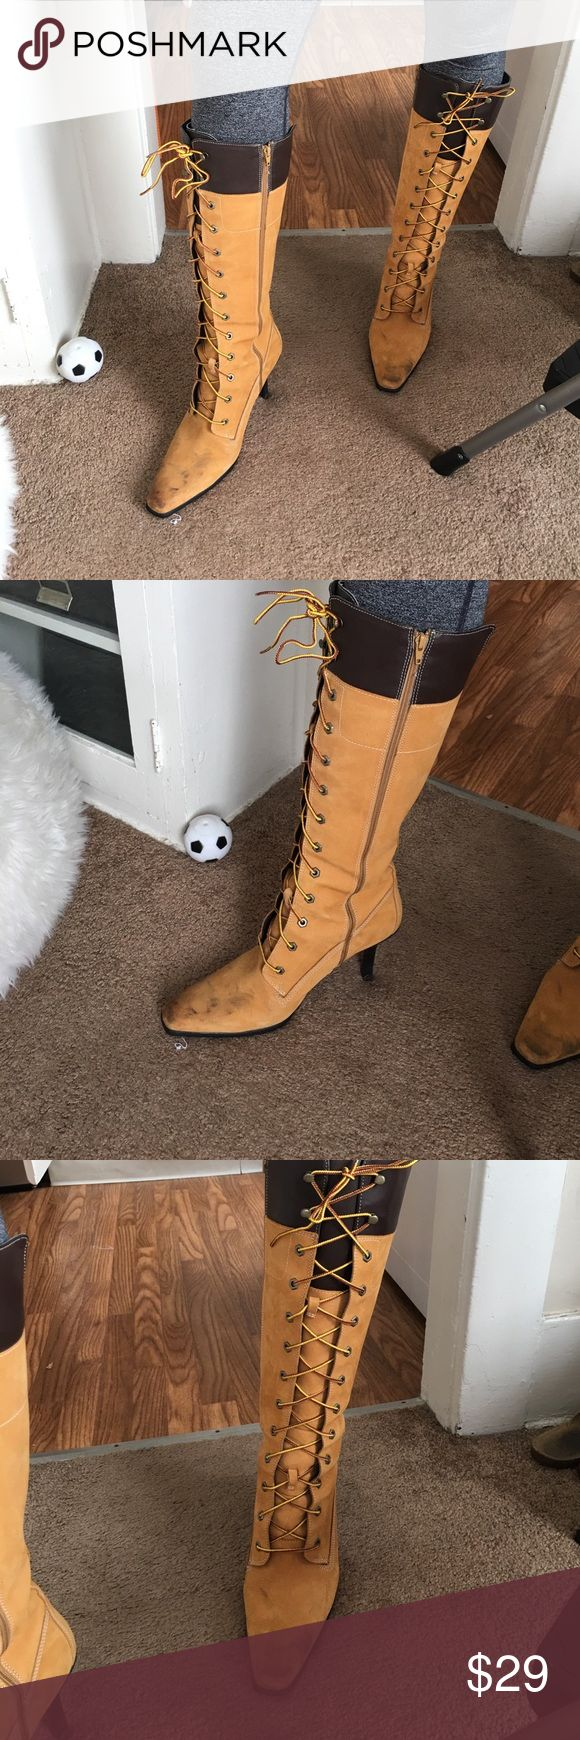 Tomb high heels! Tan timberland high heels. Few scuffs so they come as is! (Could probably be easily cleaned) Timberland Shoes Heeled Boots